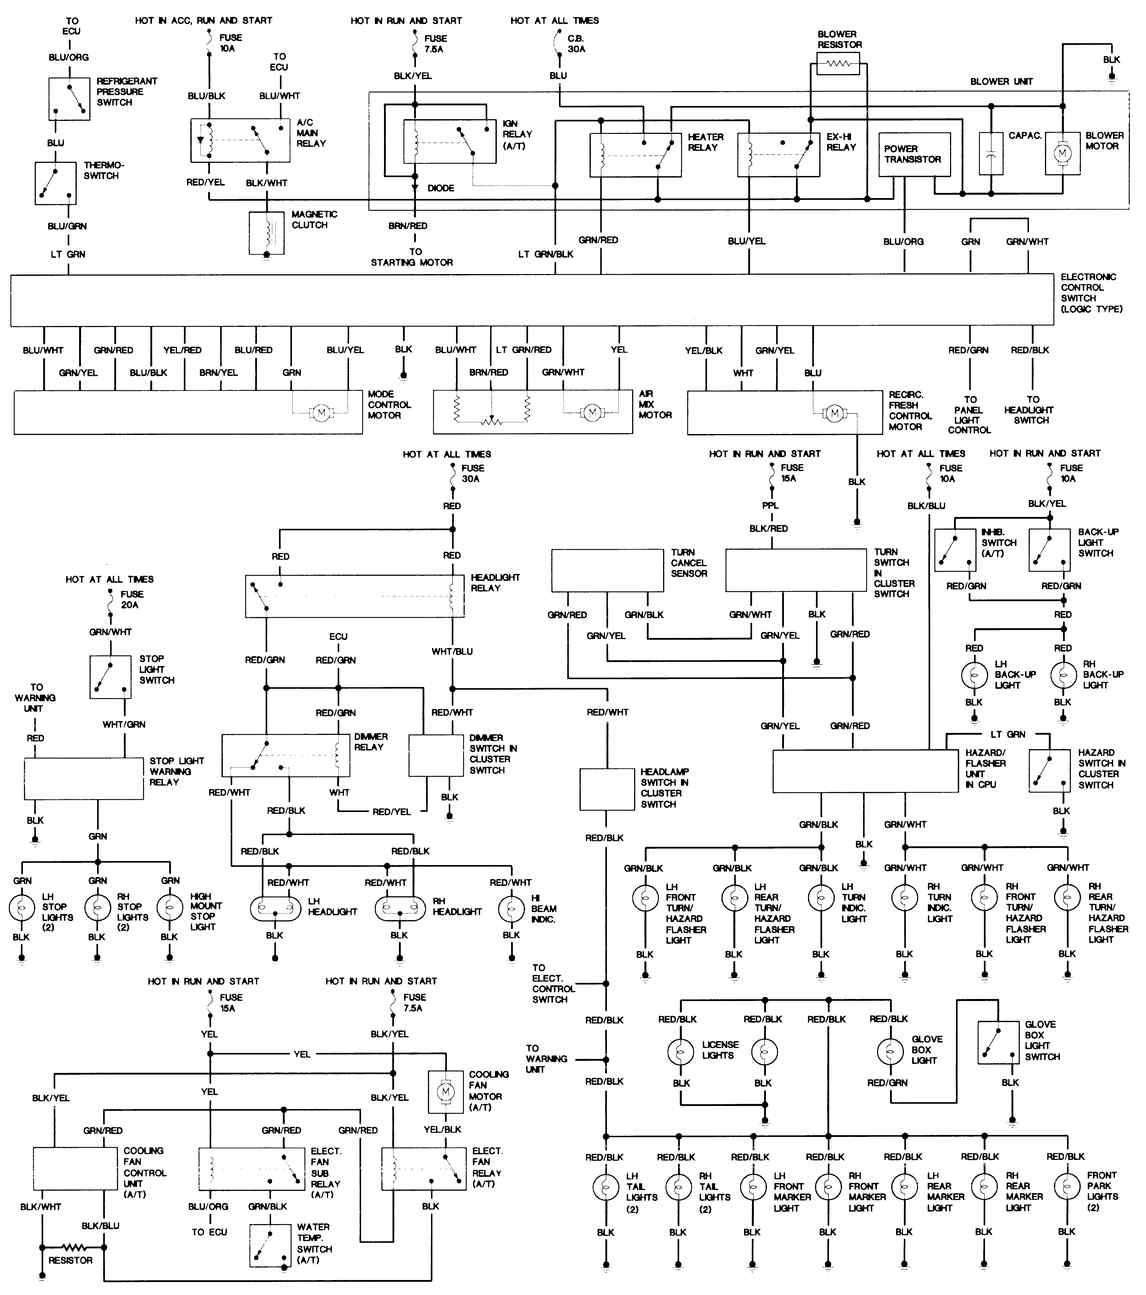 85816144l wiring diagrams 1987 mazda rx7 wiring diagram at soozxer.org